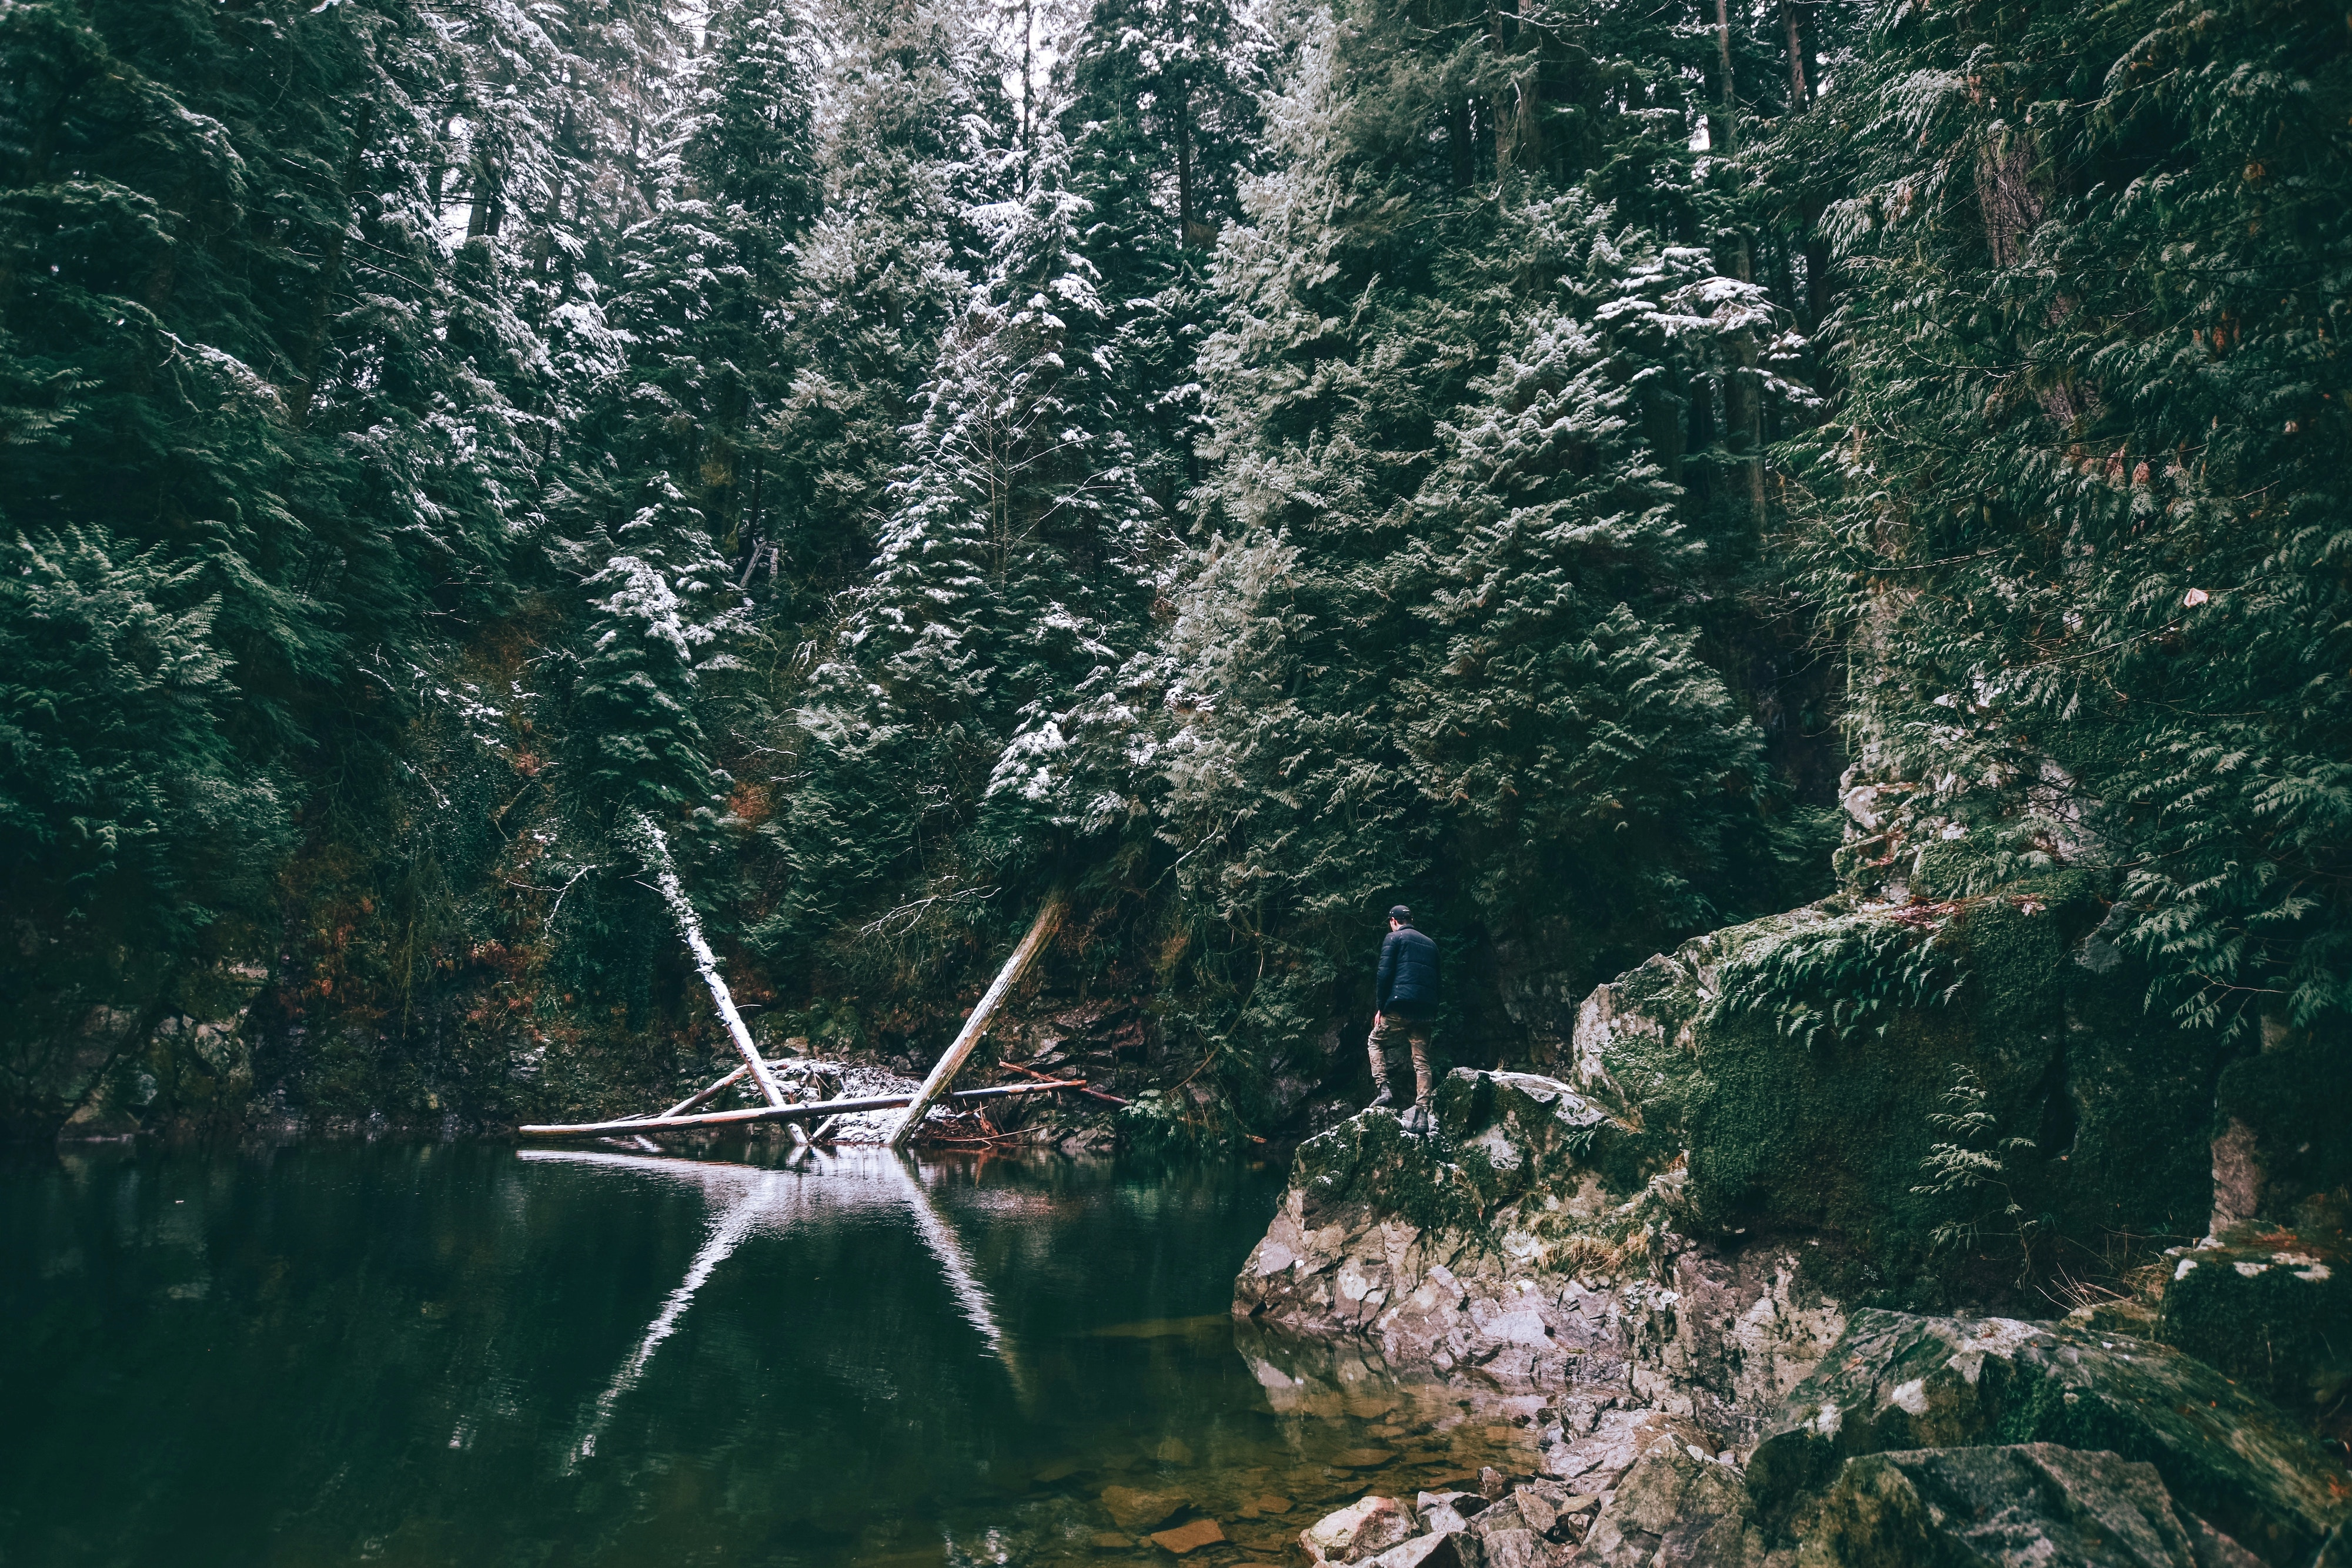 Remote Year Inspiring Places Photography Competition with Unsplash | Jeremey Allouche Forest Exploration